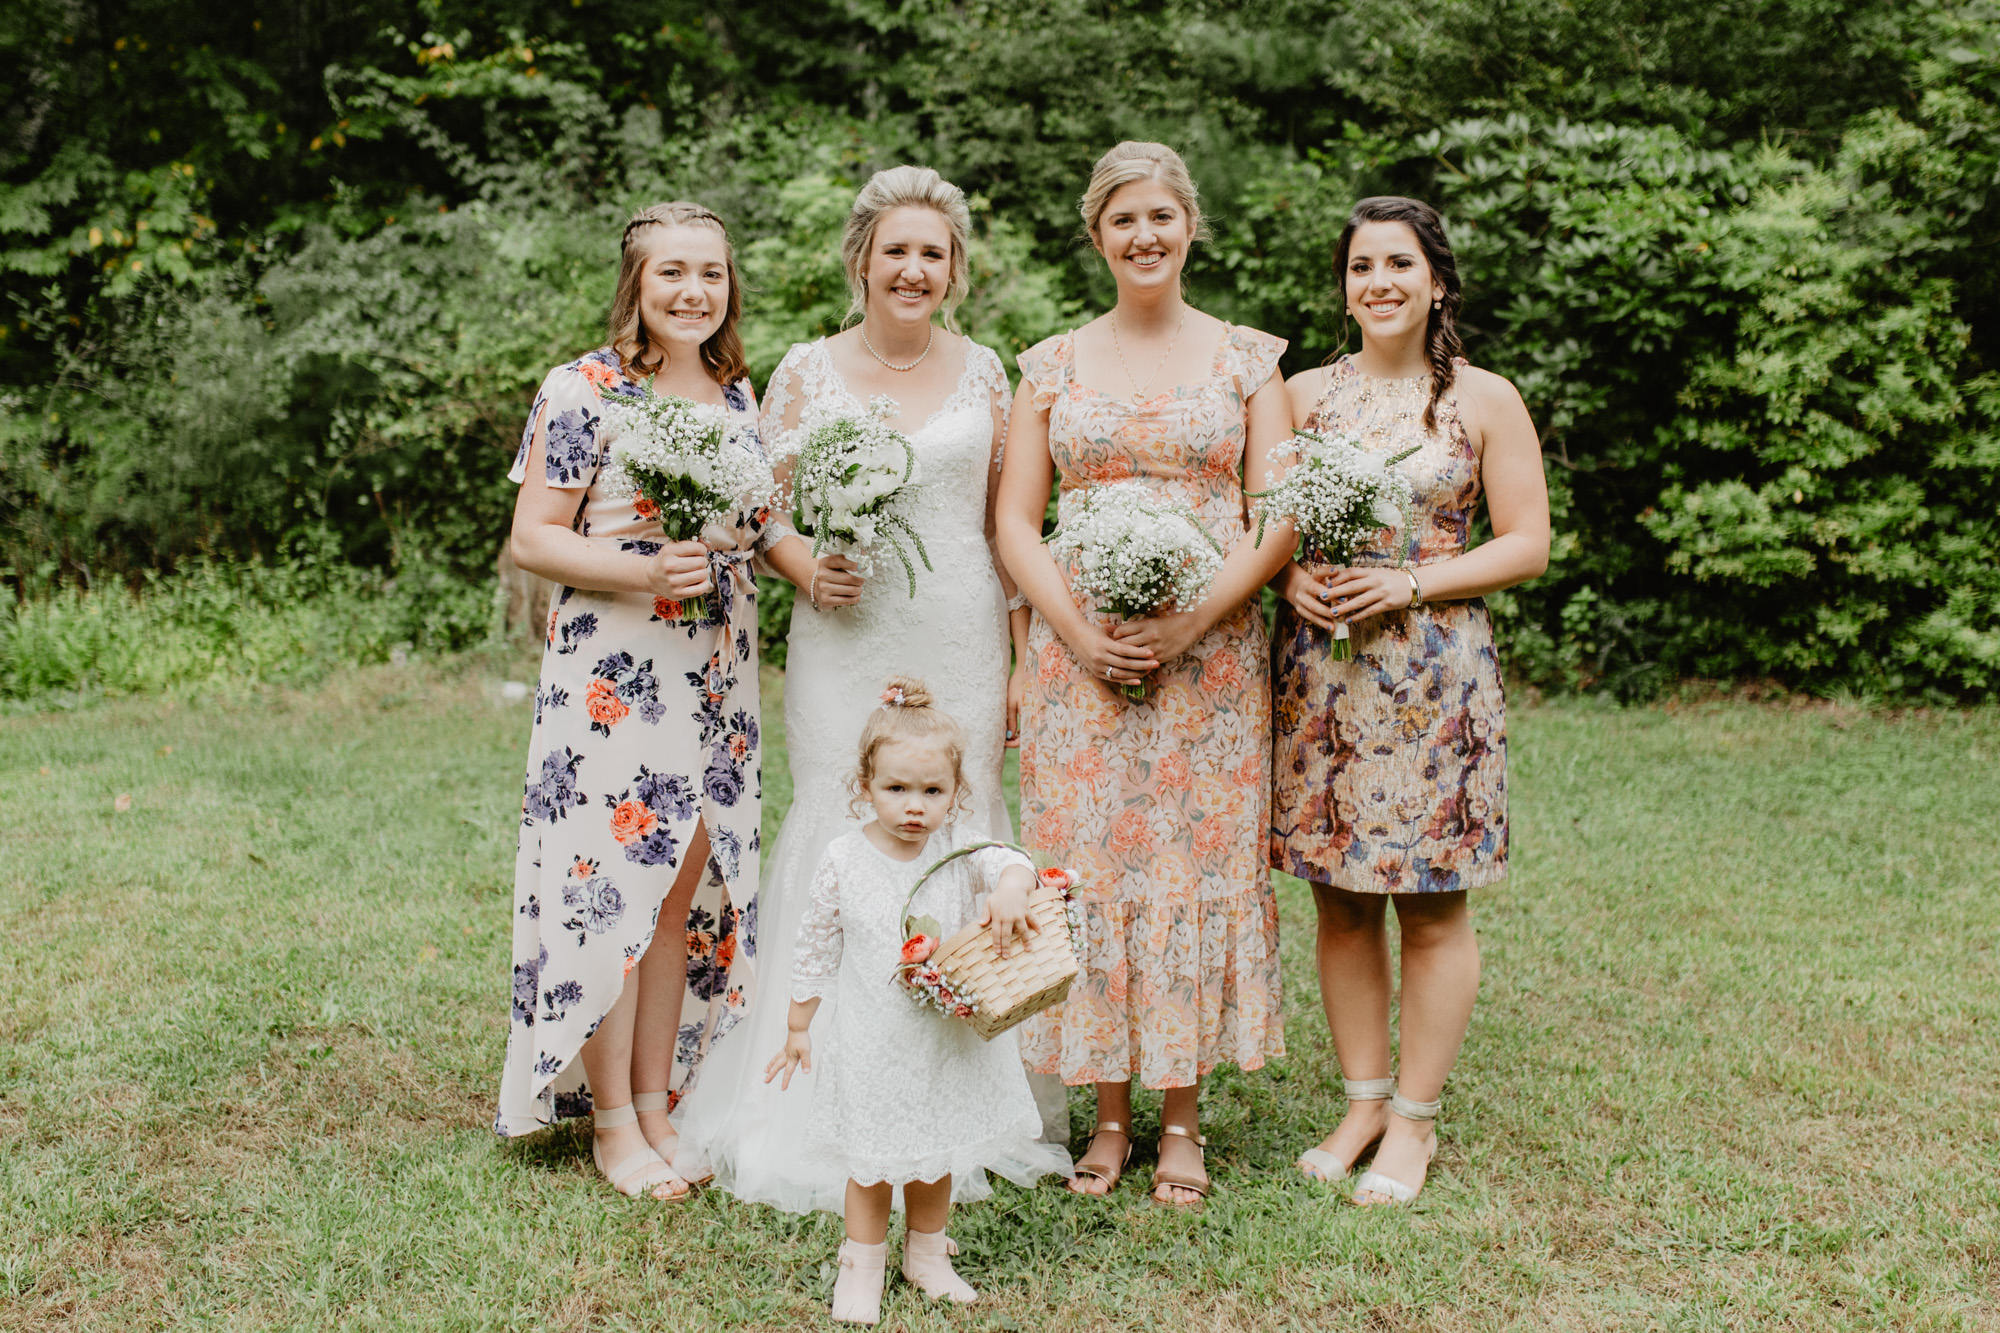 The bride and her bridesmaids dressed in floral dresses